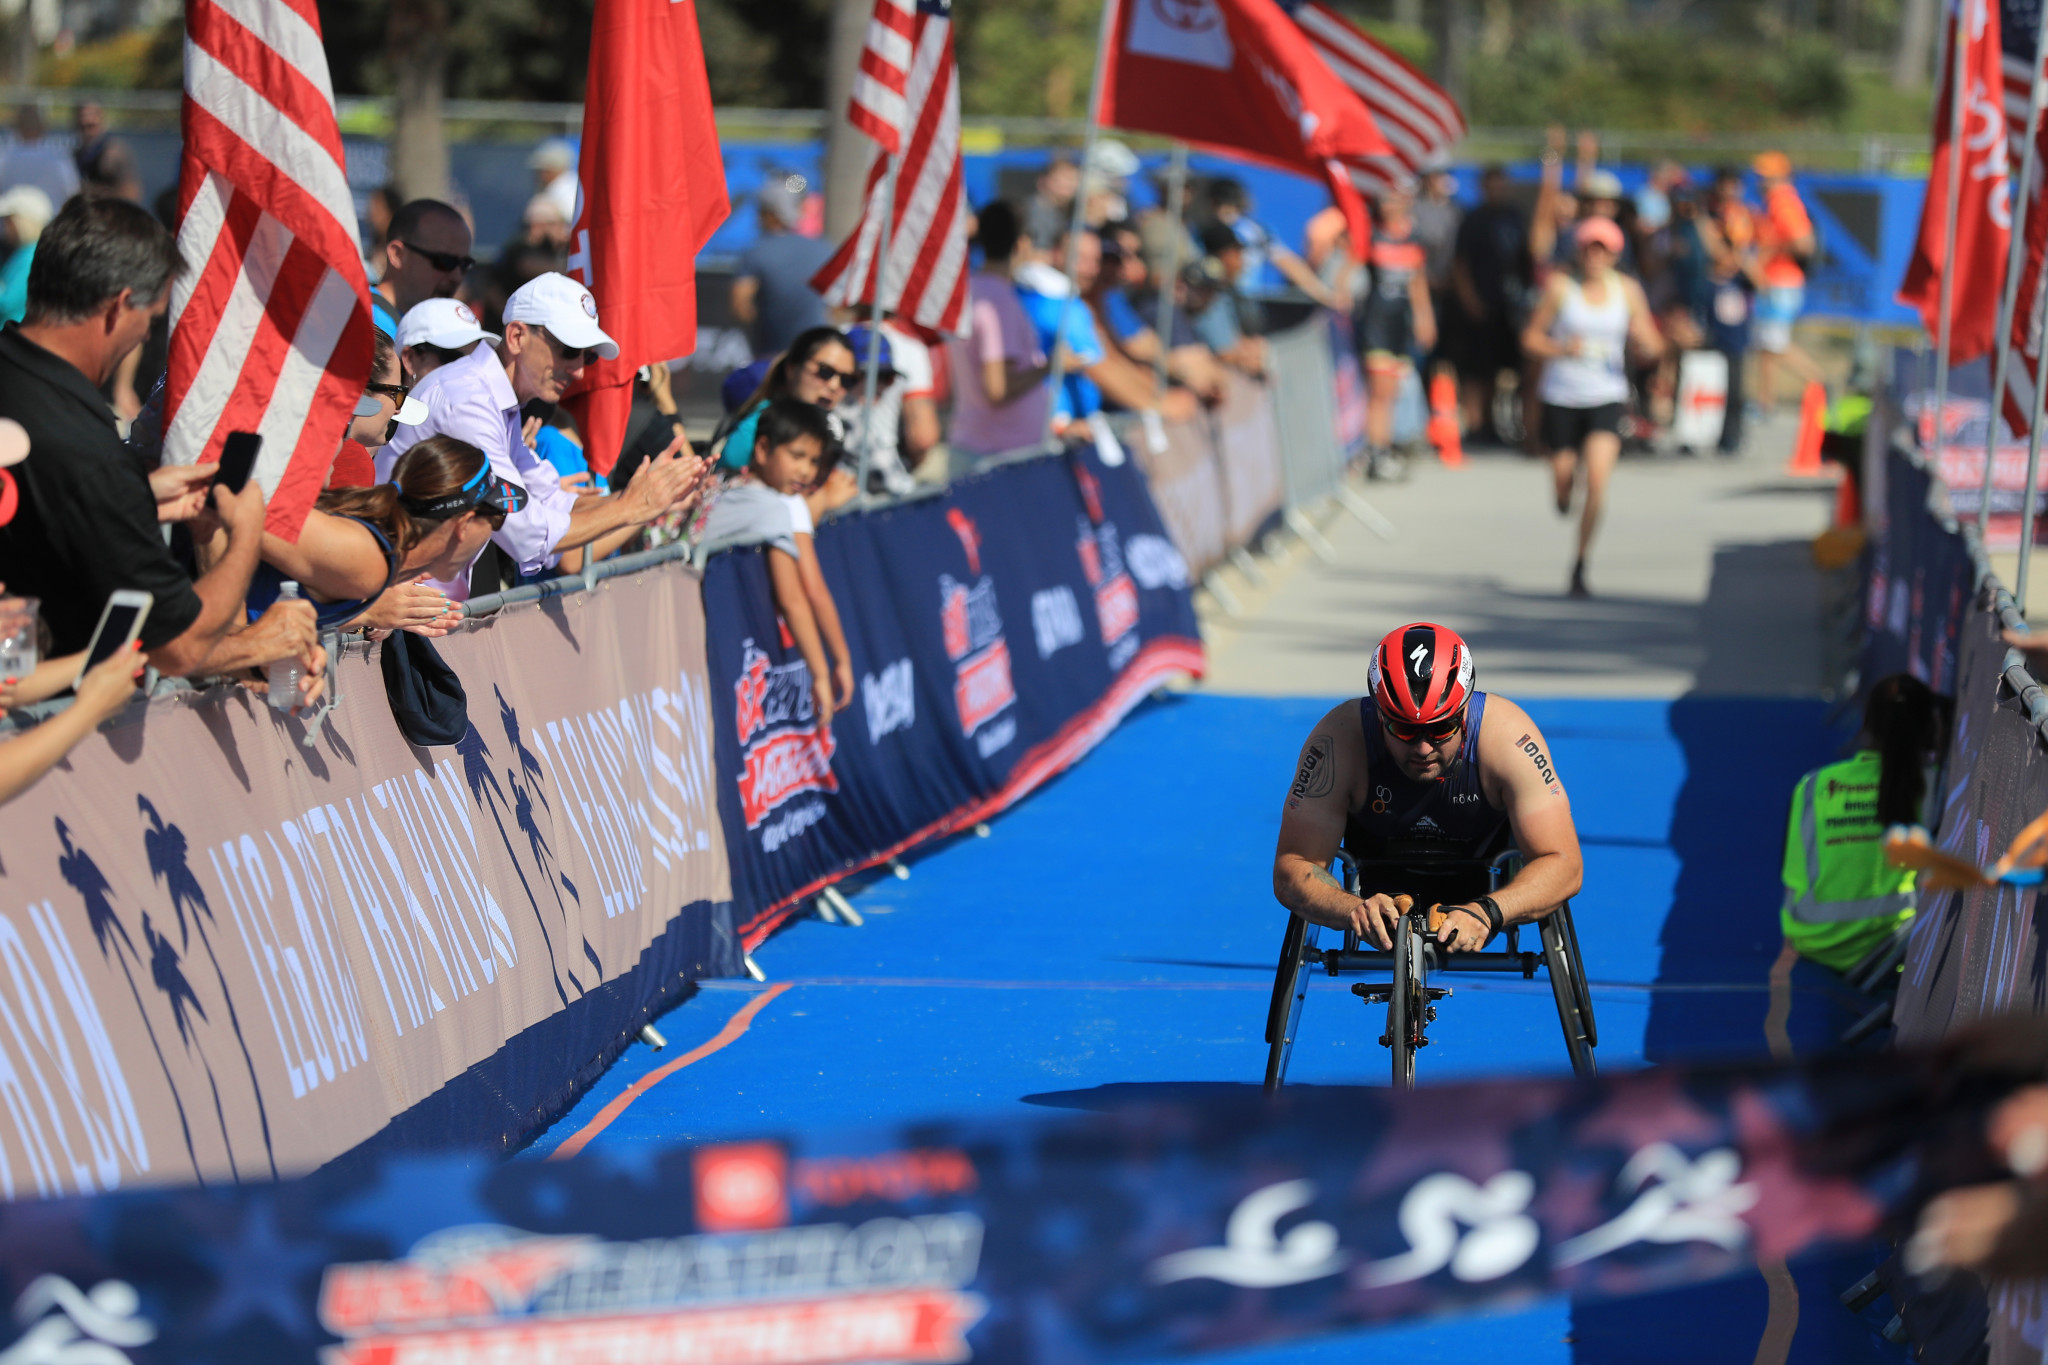 USA Paratriathlon 2020 National Championships cancelled due to coronavirus